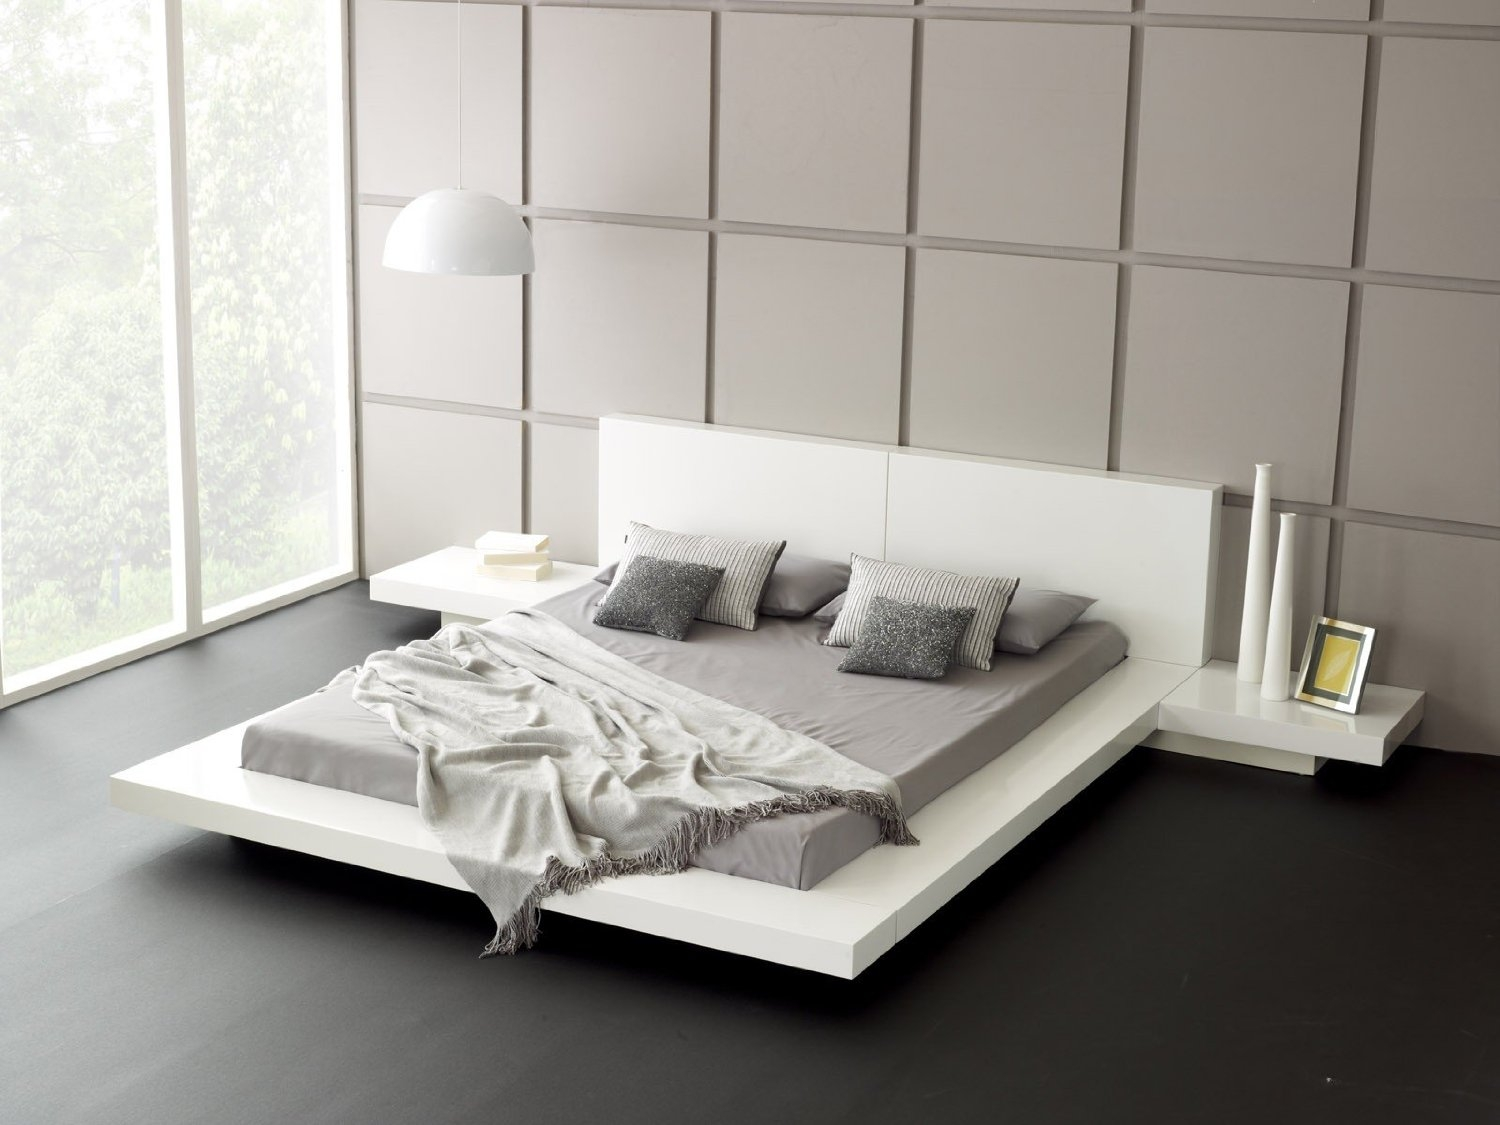 Japanese Bed Frame Designs